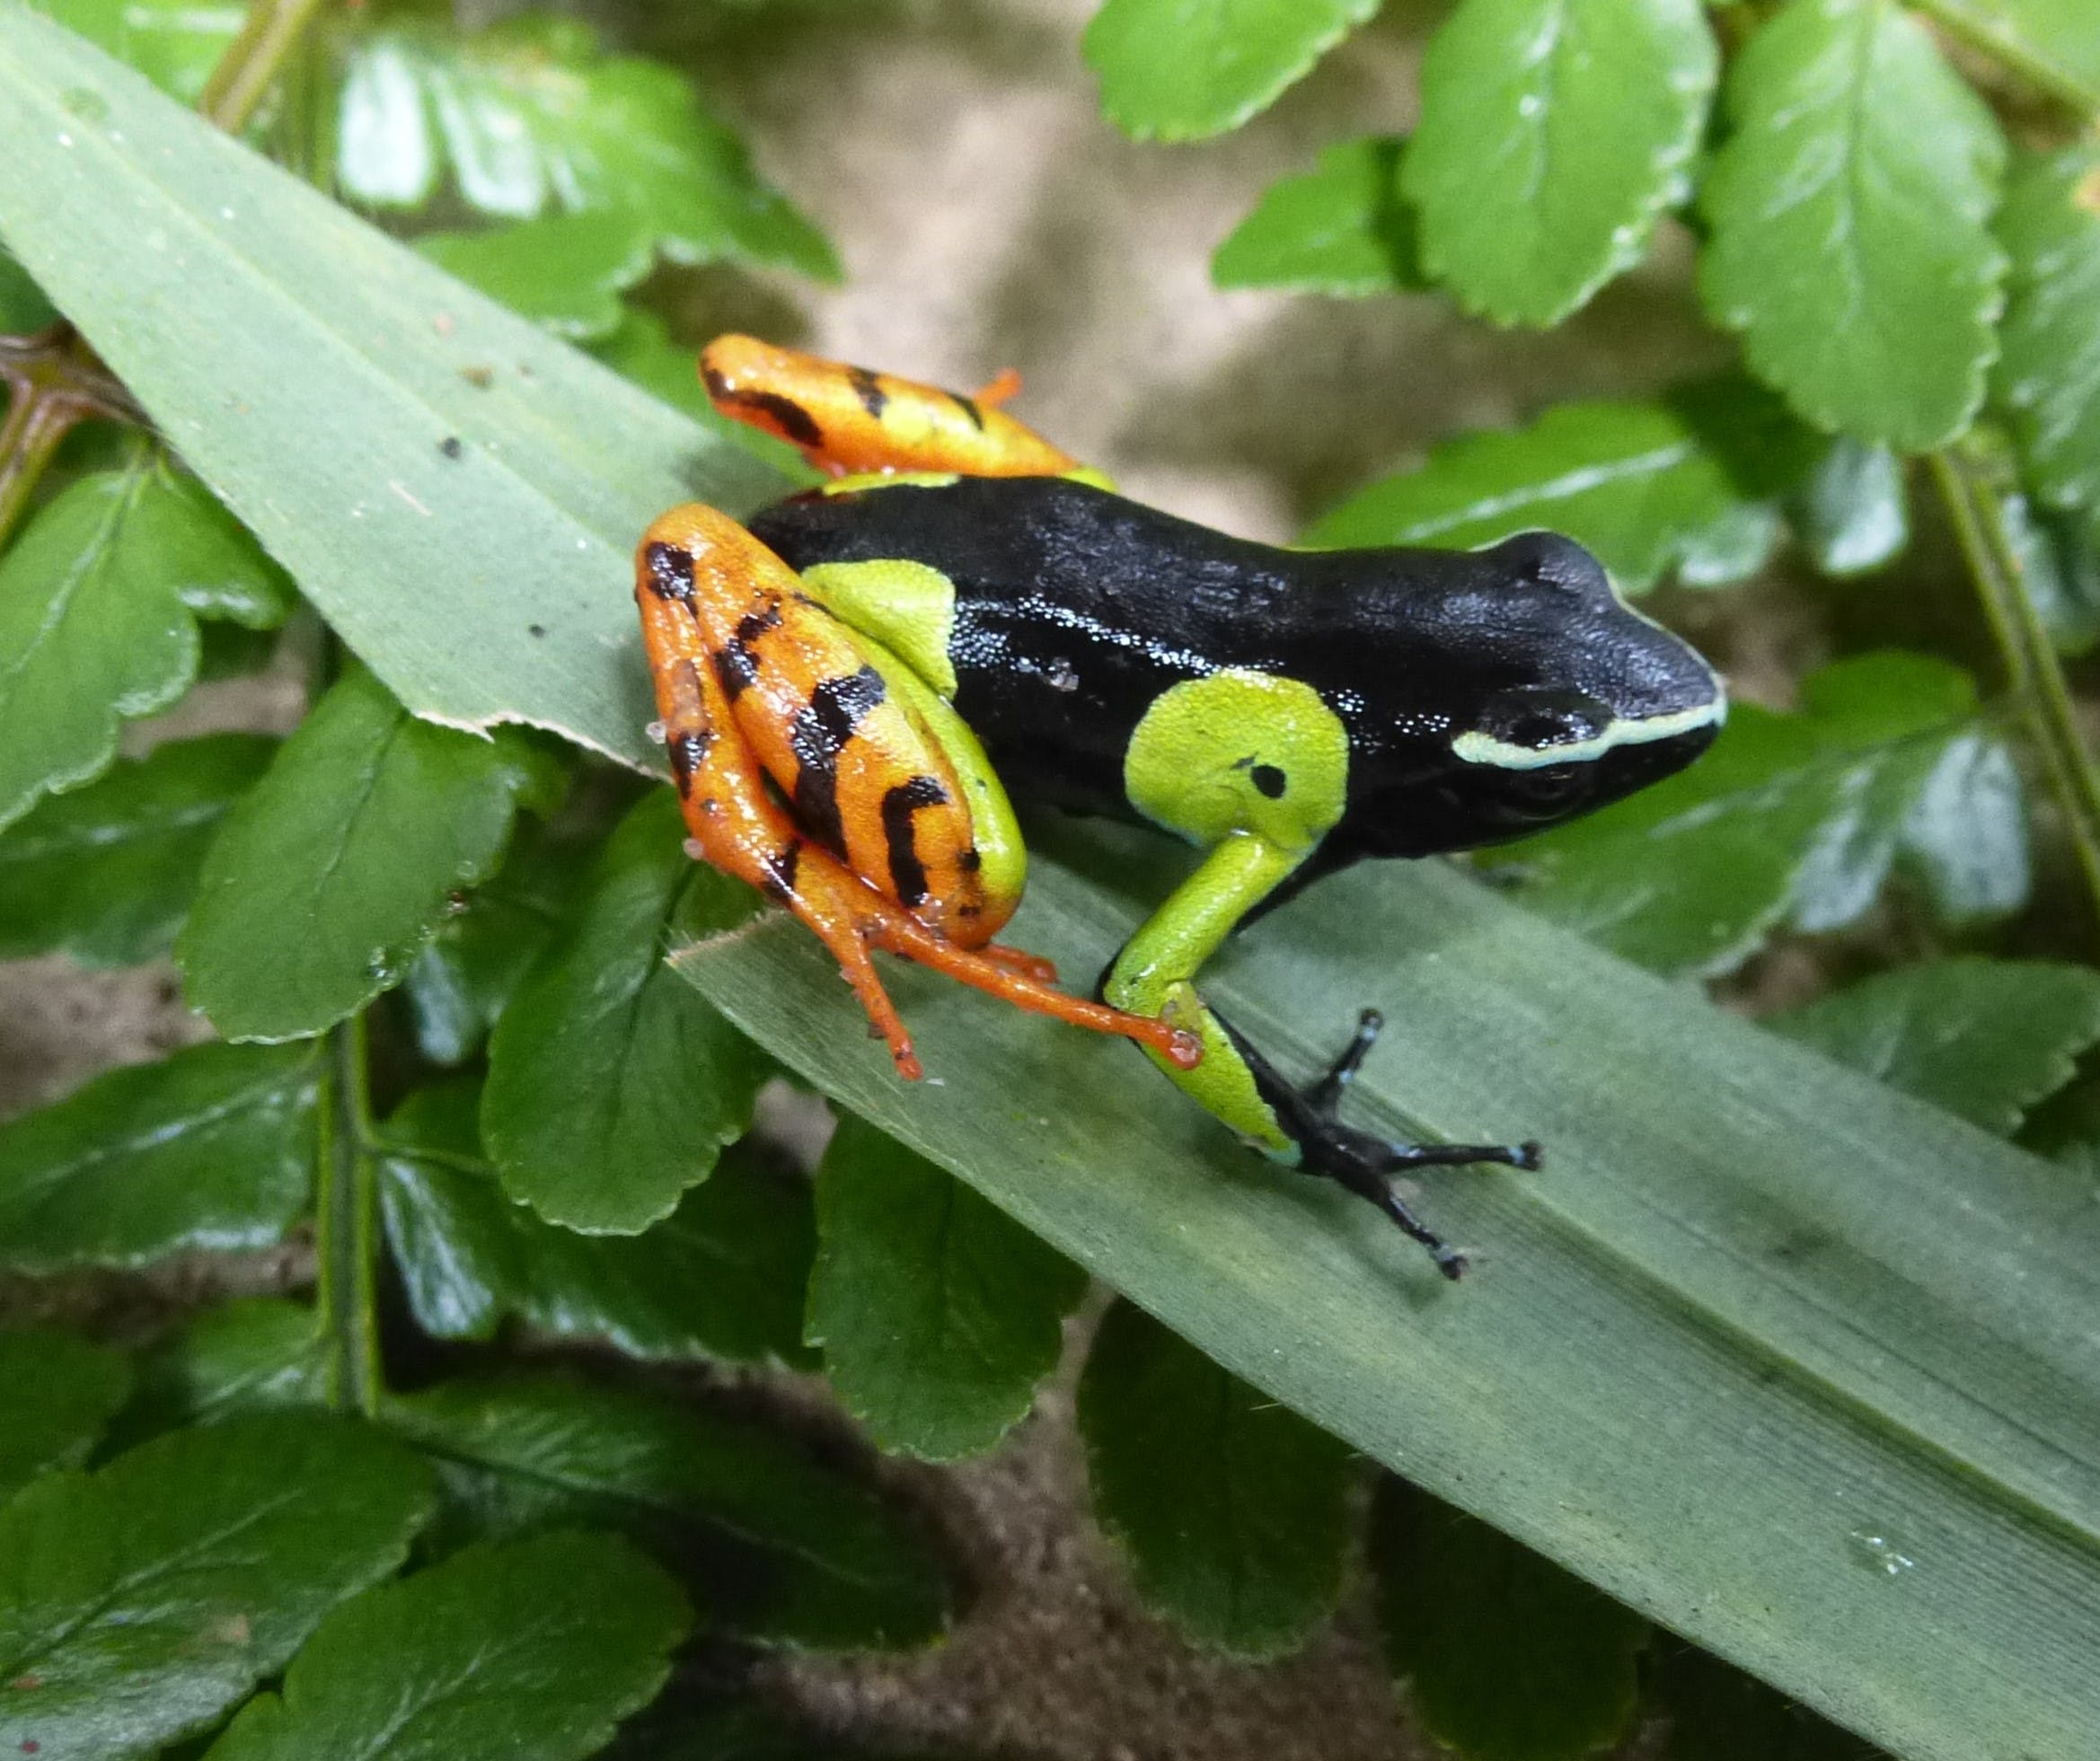 a bright orange, green, and black tree frog sitting on leaves